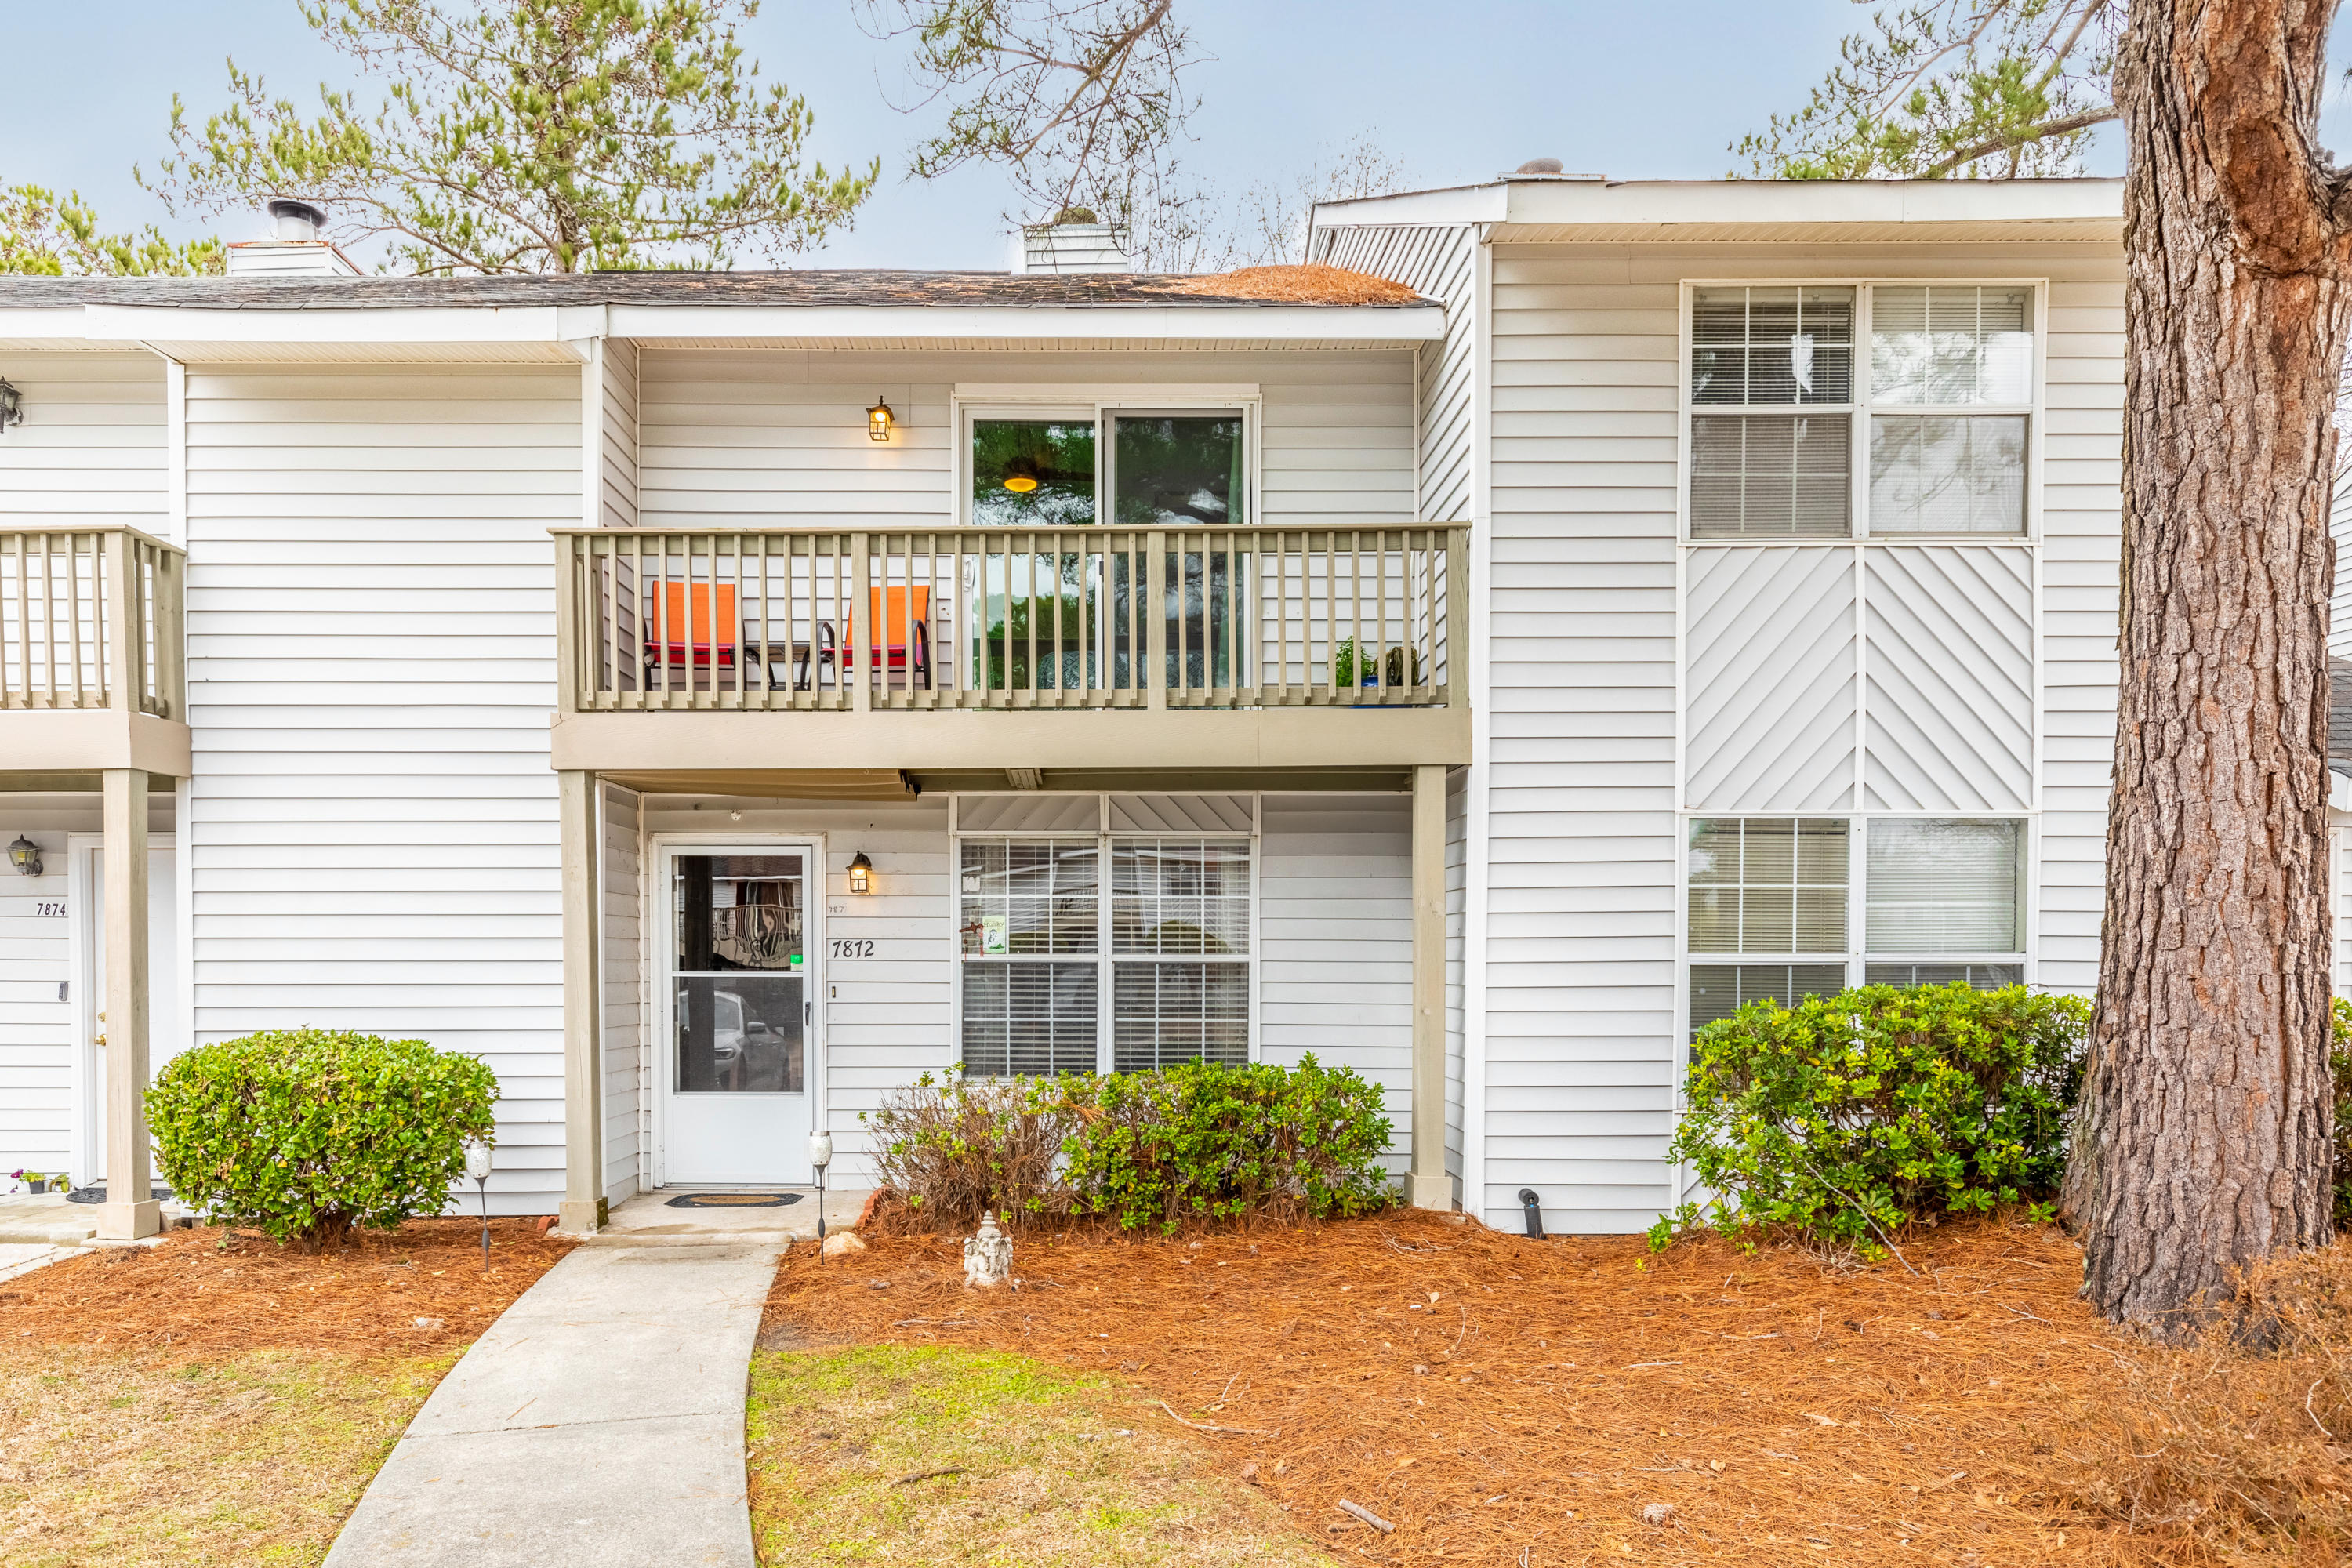 7872 Nummie Court North Charleston, Sc 29418